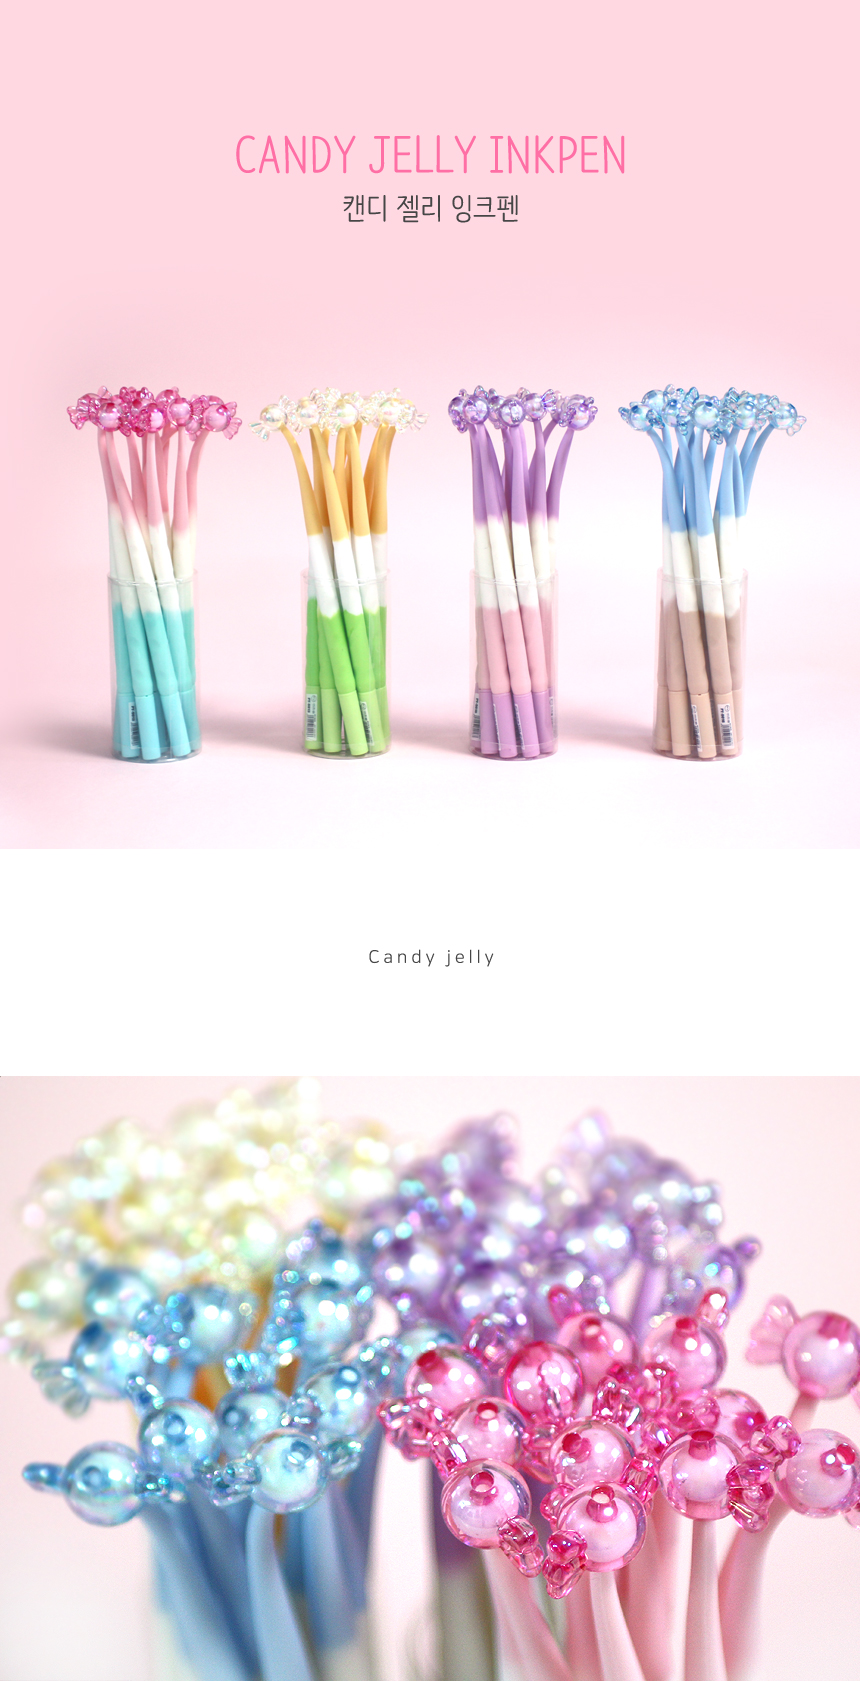 candyjelly_pen_01.jpg